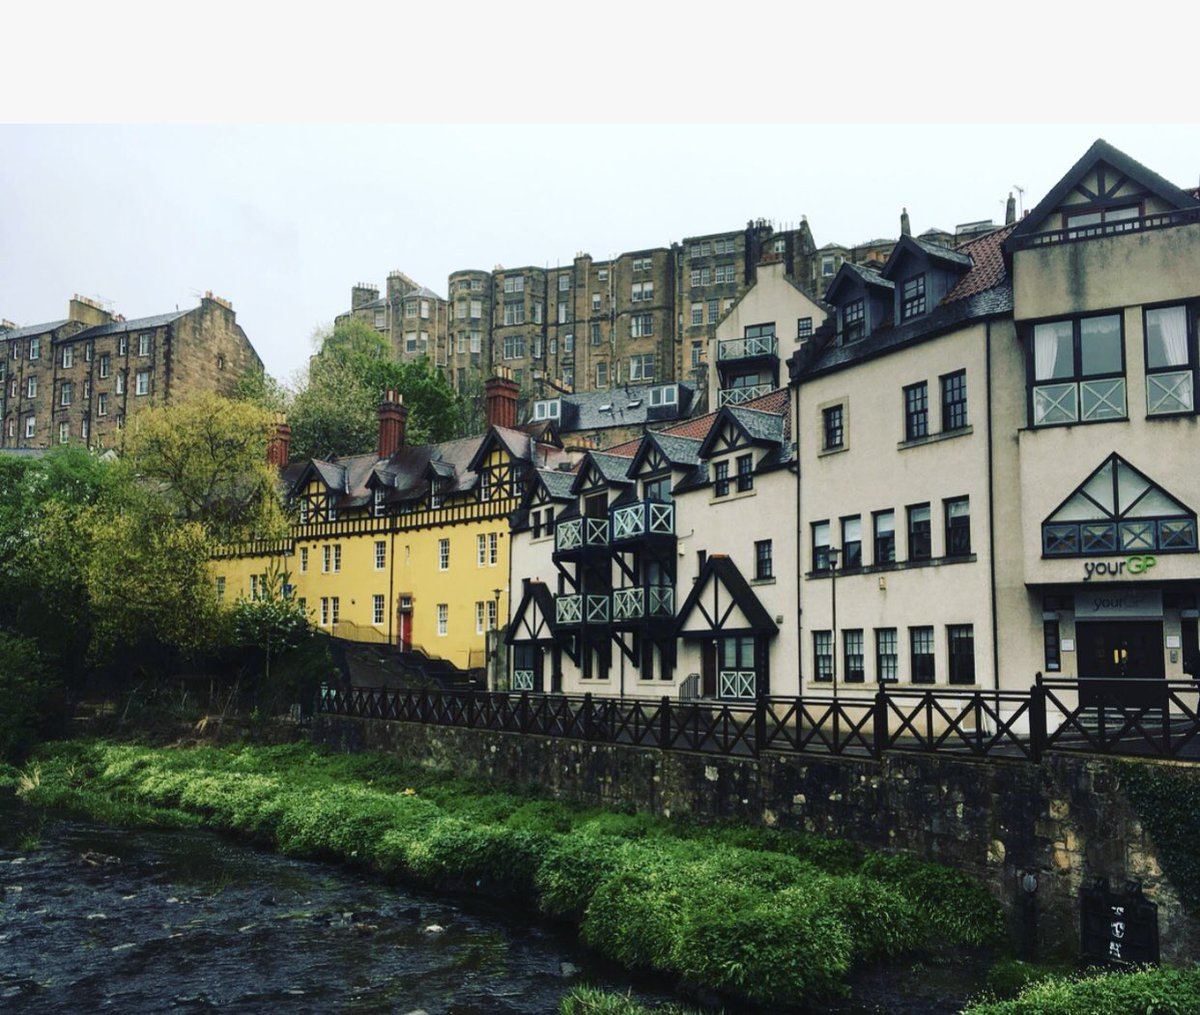 The first of #EdinburghWows Wonder Walks!  The tour had pit stops at Dean Village, @lyceumtheatre, @CairngormCoffee ,@UNIONgallery1 @NatGalleriesSco and ended at the @traversetheatre 🎭 Fancy it?  https://t.co/RjvlGAYnoZ #edinburghwows #edinburghswestend #thisisedinburgh